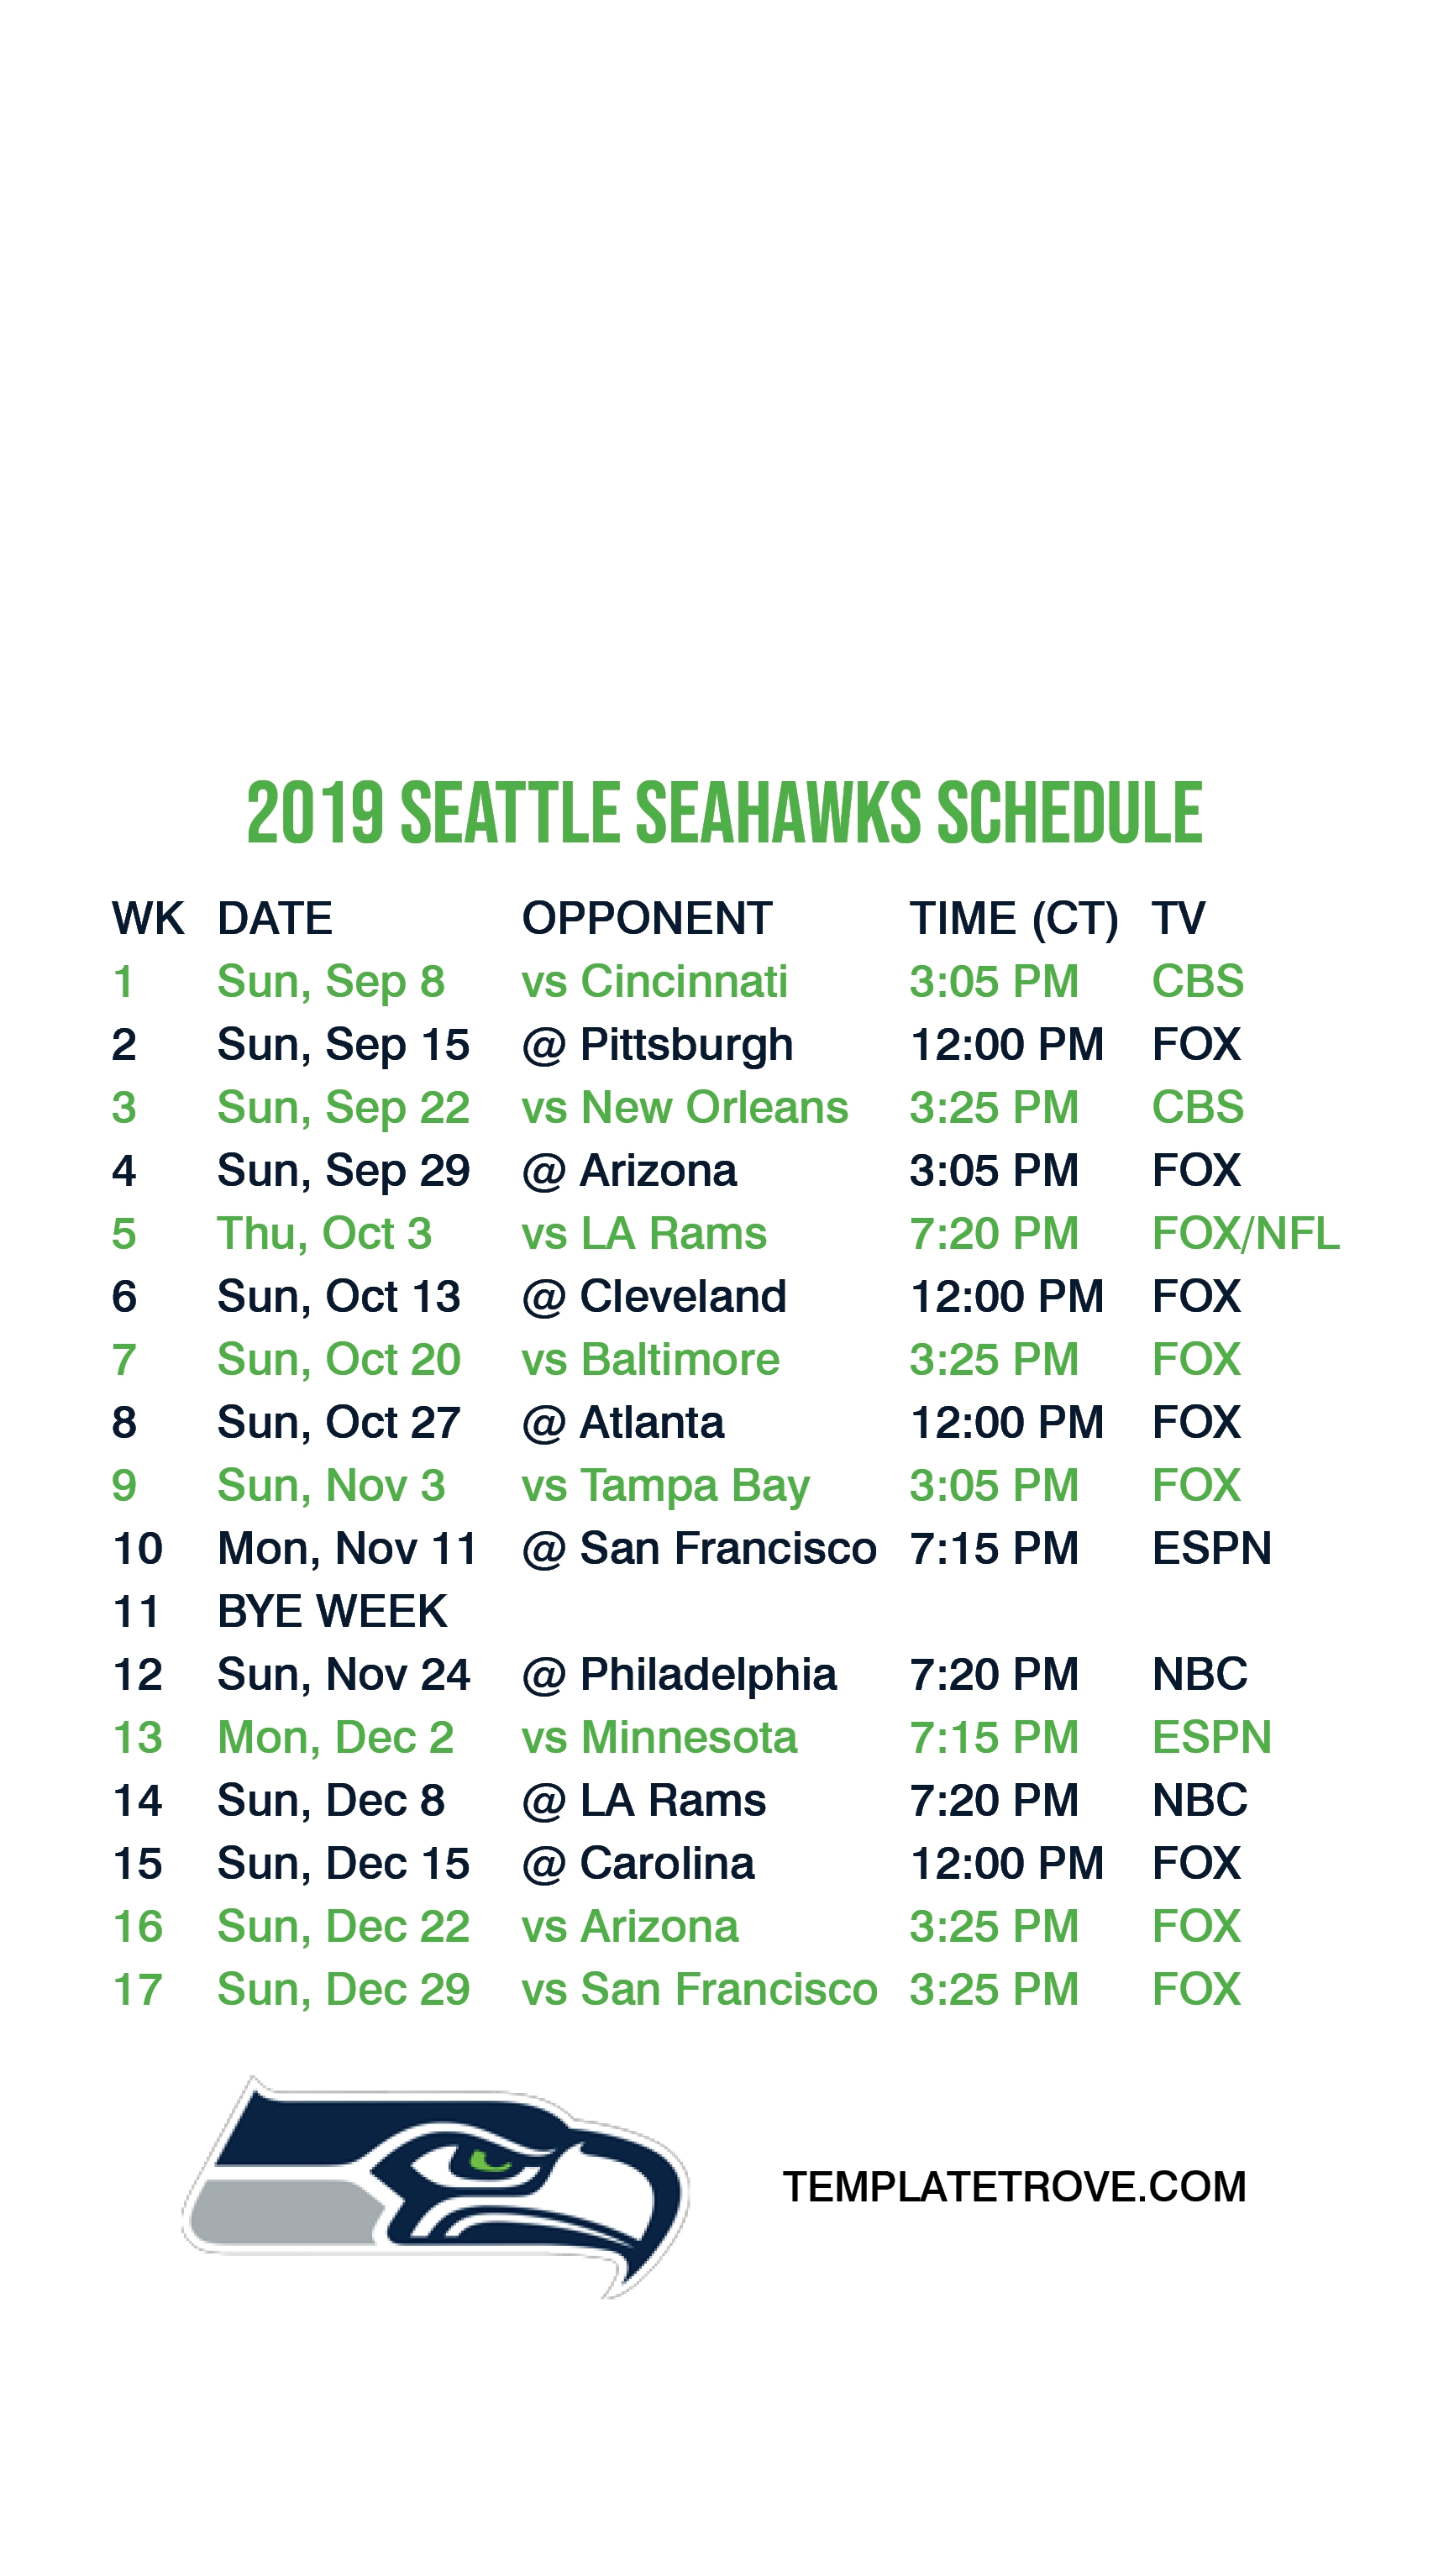 2019-2020 Seattle Seahawks Lock Screen Schedule For Iphone 6 intended for Seahawks 2019 2020 Schedule Printable